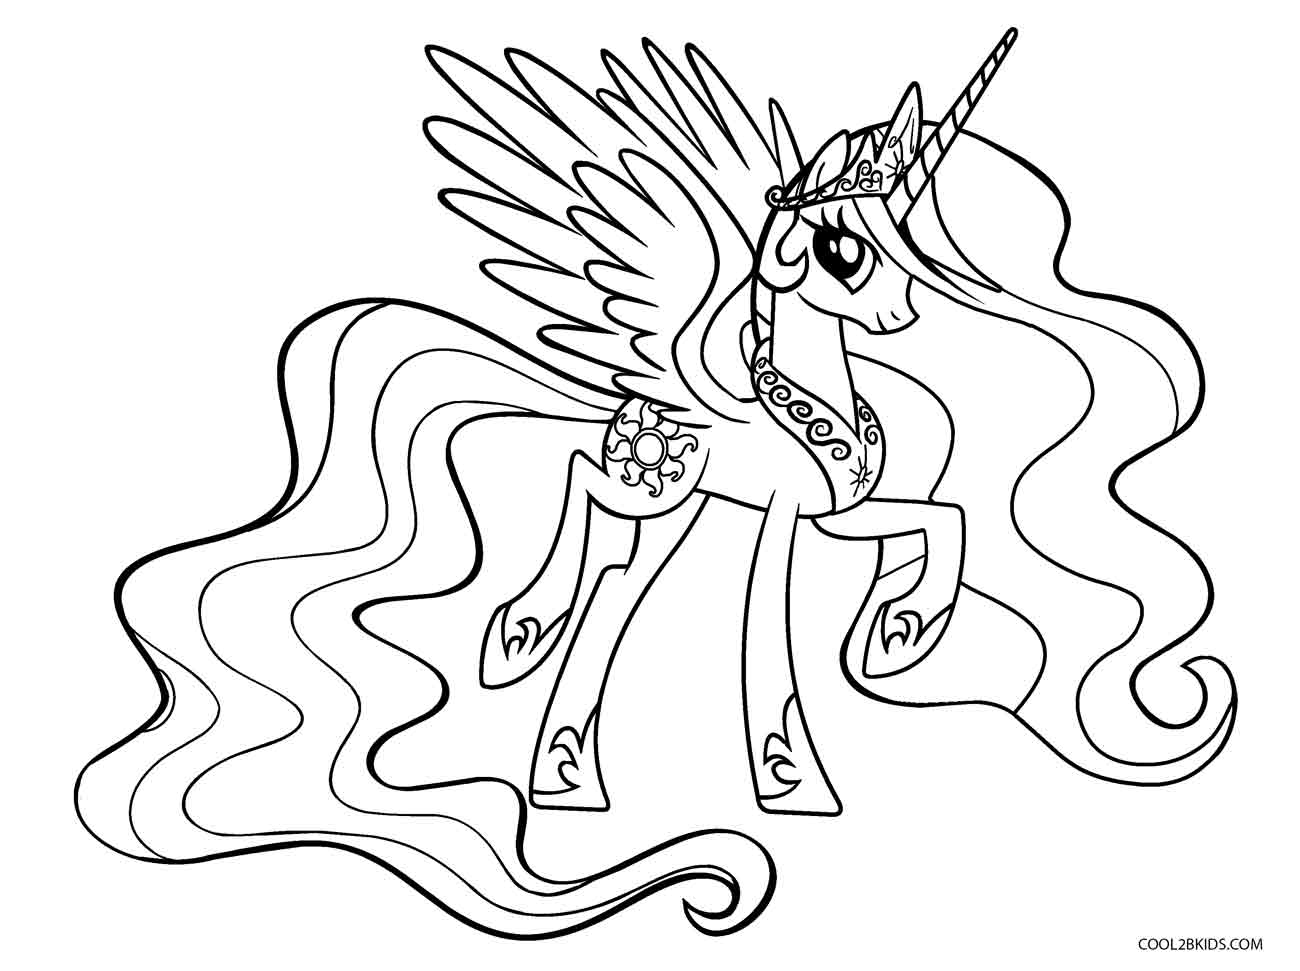 mlp coloring page my little pony human coloring pages coloring home page coloring mlp